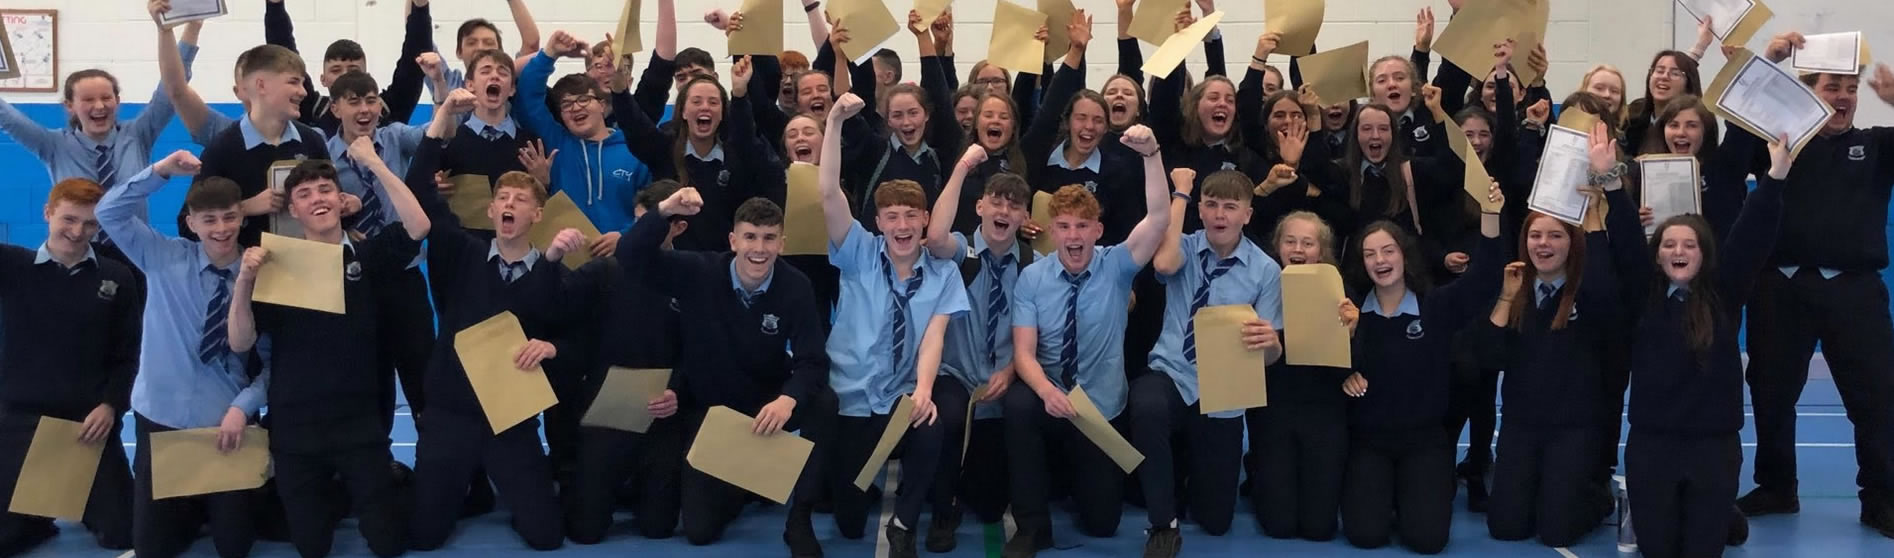 St Catherine's VS Pupils holding up exam results